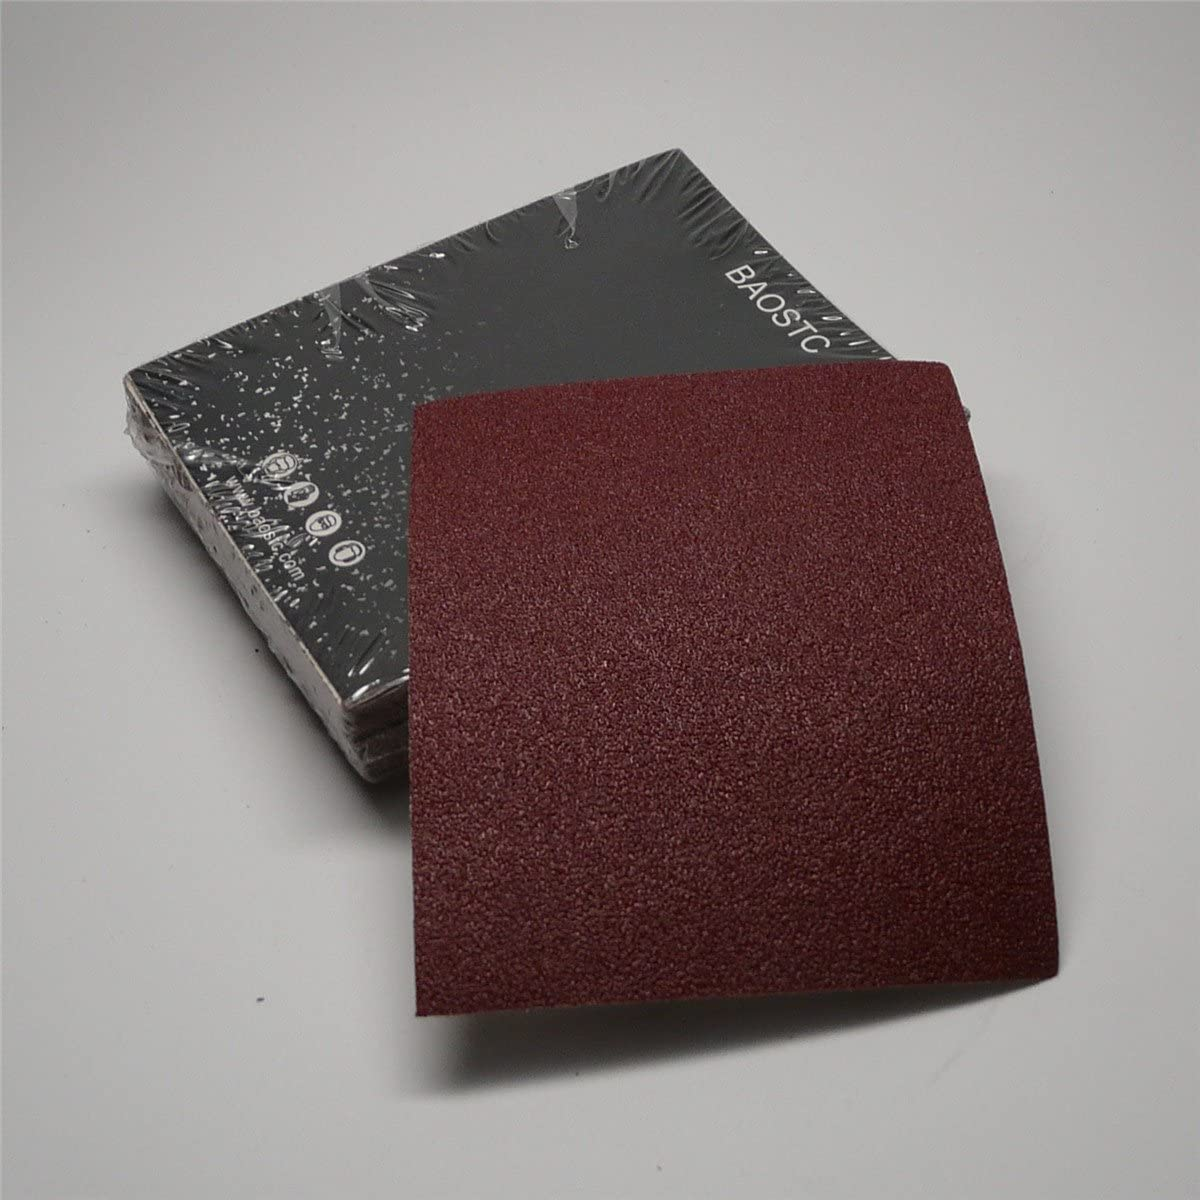 BAOSTC 1/4 sandpaper sheet,4-1/2